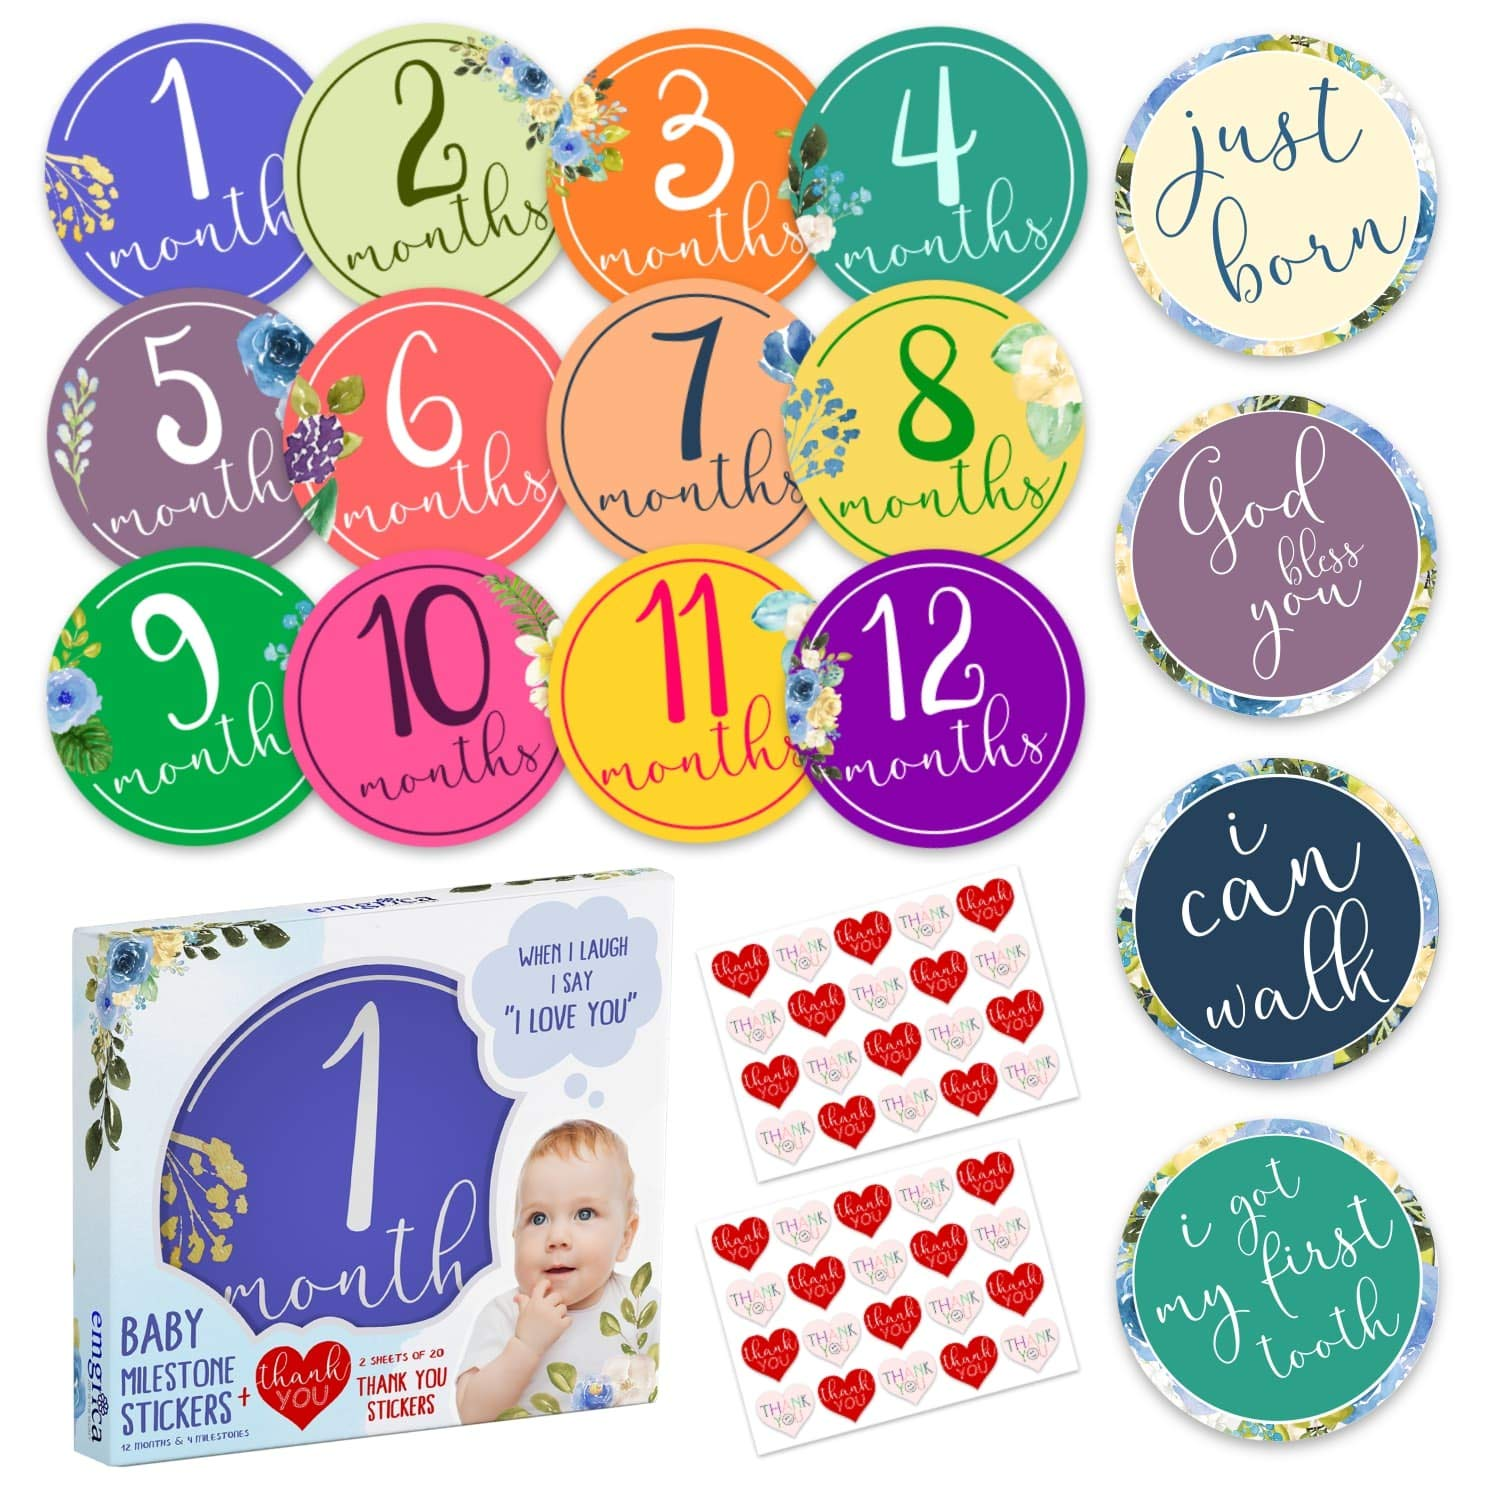 Baby Monthly Milestone Stickers Unisex - Great for Baby Shower Girl and Boy with Gift Packaging 4 Newborn Milestones with 40 Heart Thank You Stickers - Designed for Beautiful Memories Together